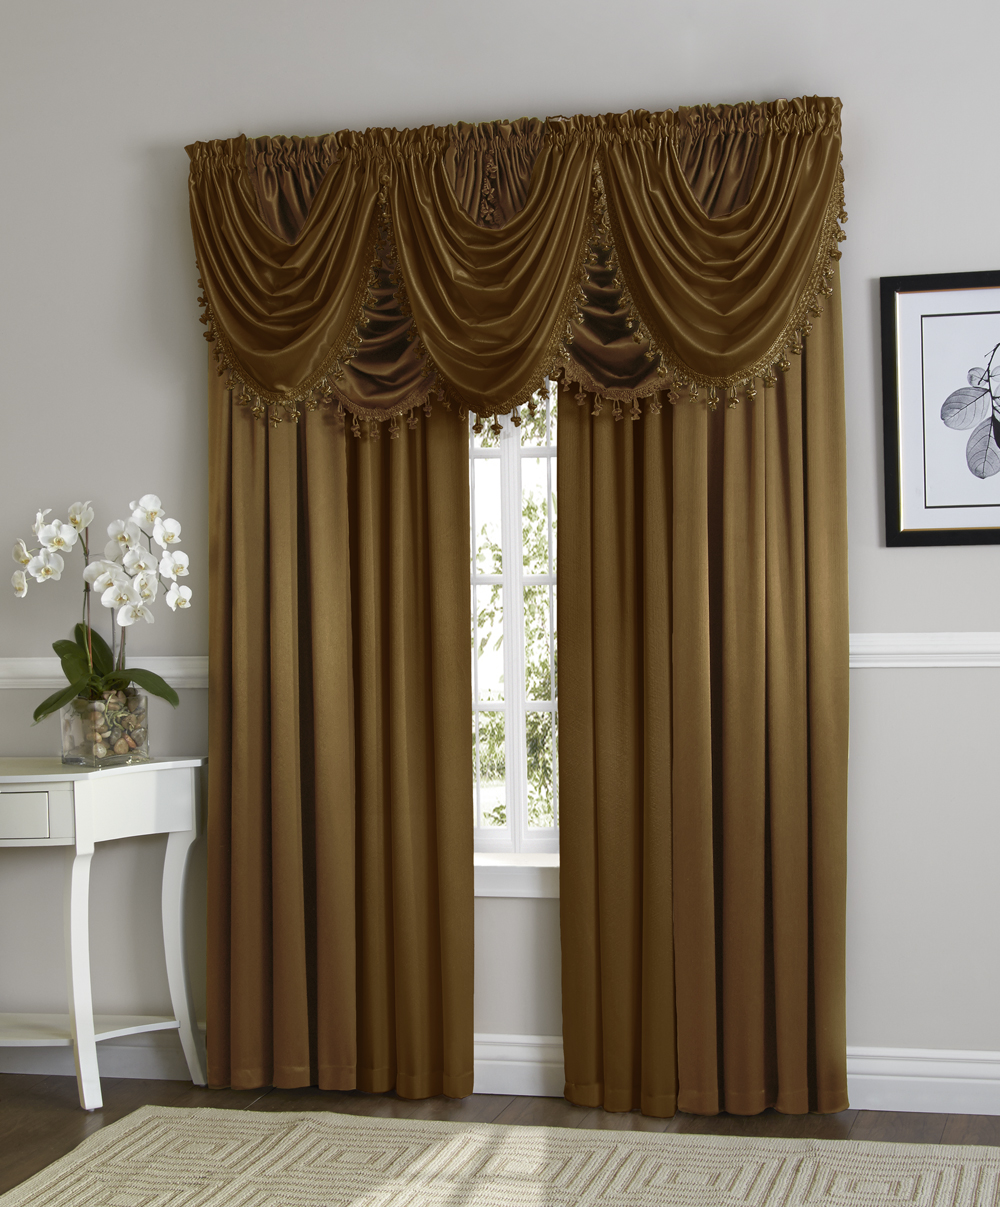 Hyatt Window Curtain & Fringed Valance Complete 9 Piece Window Treatment Set Gold by